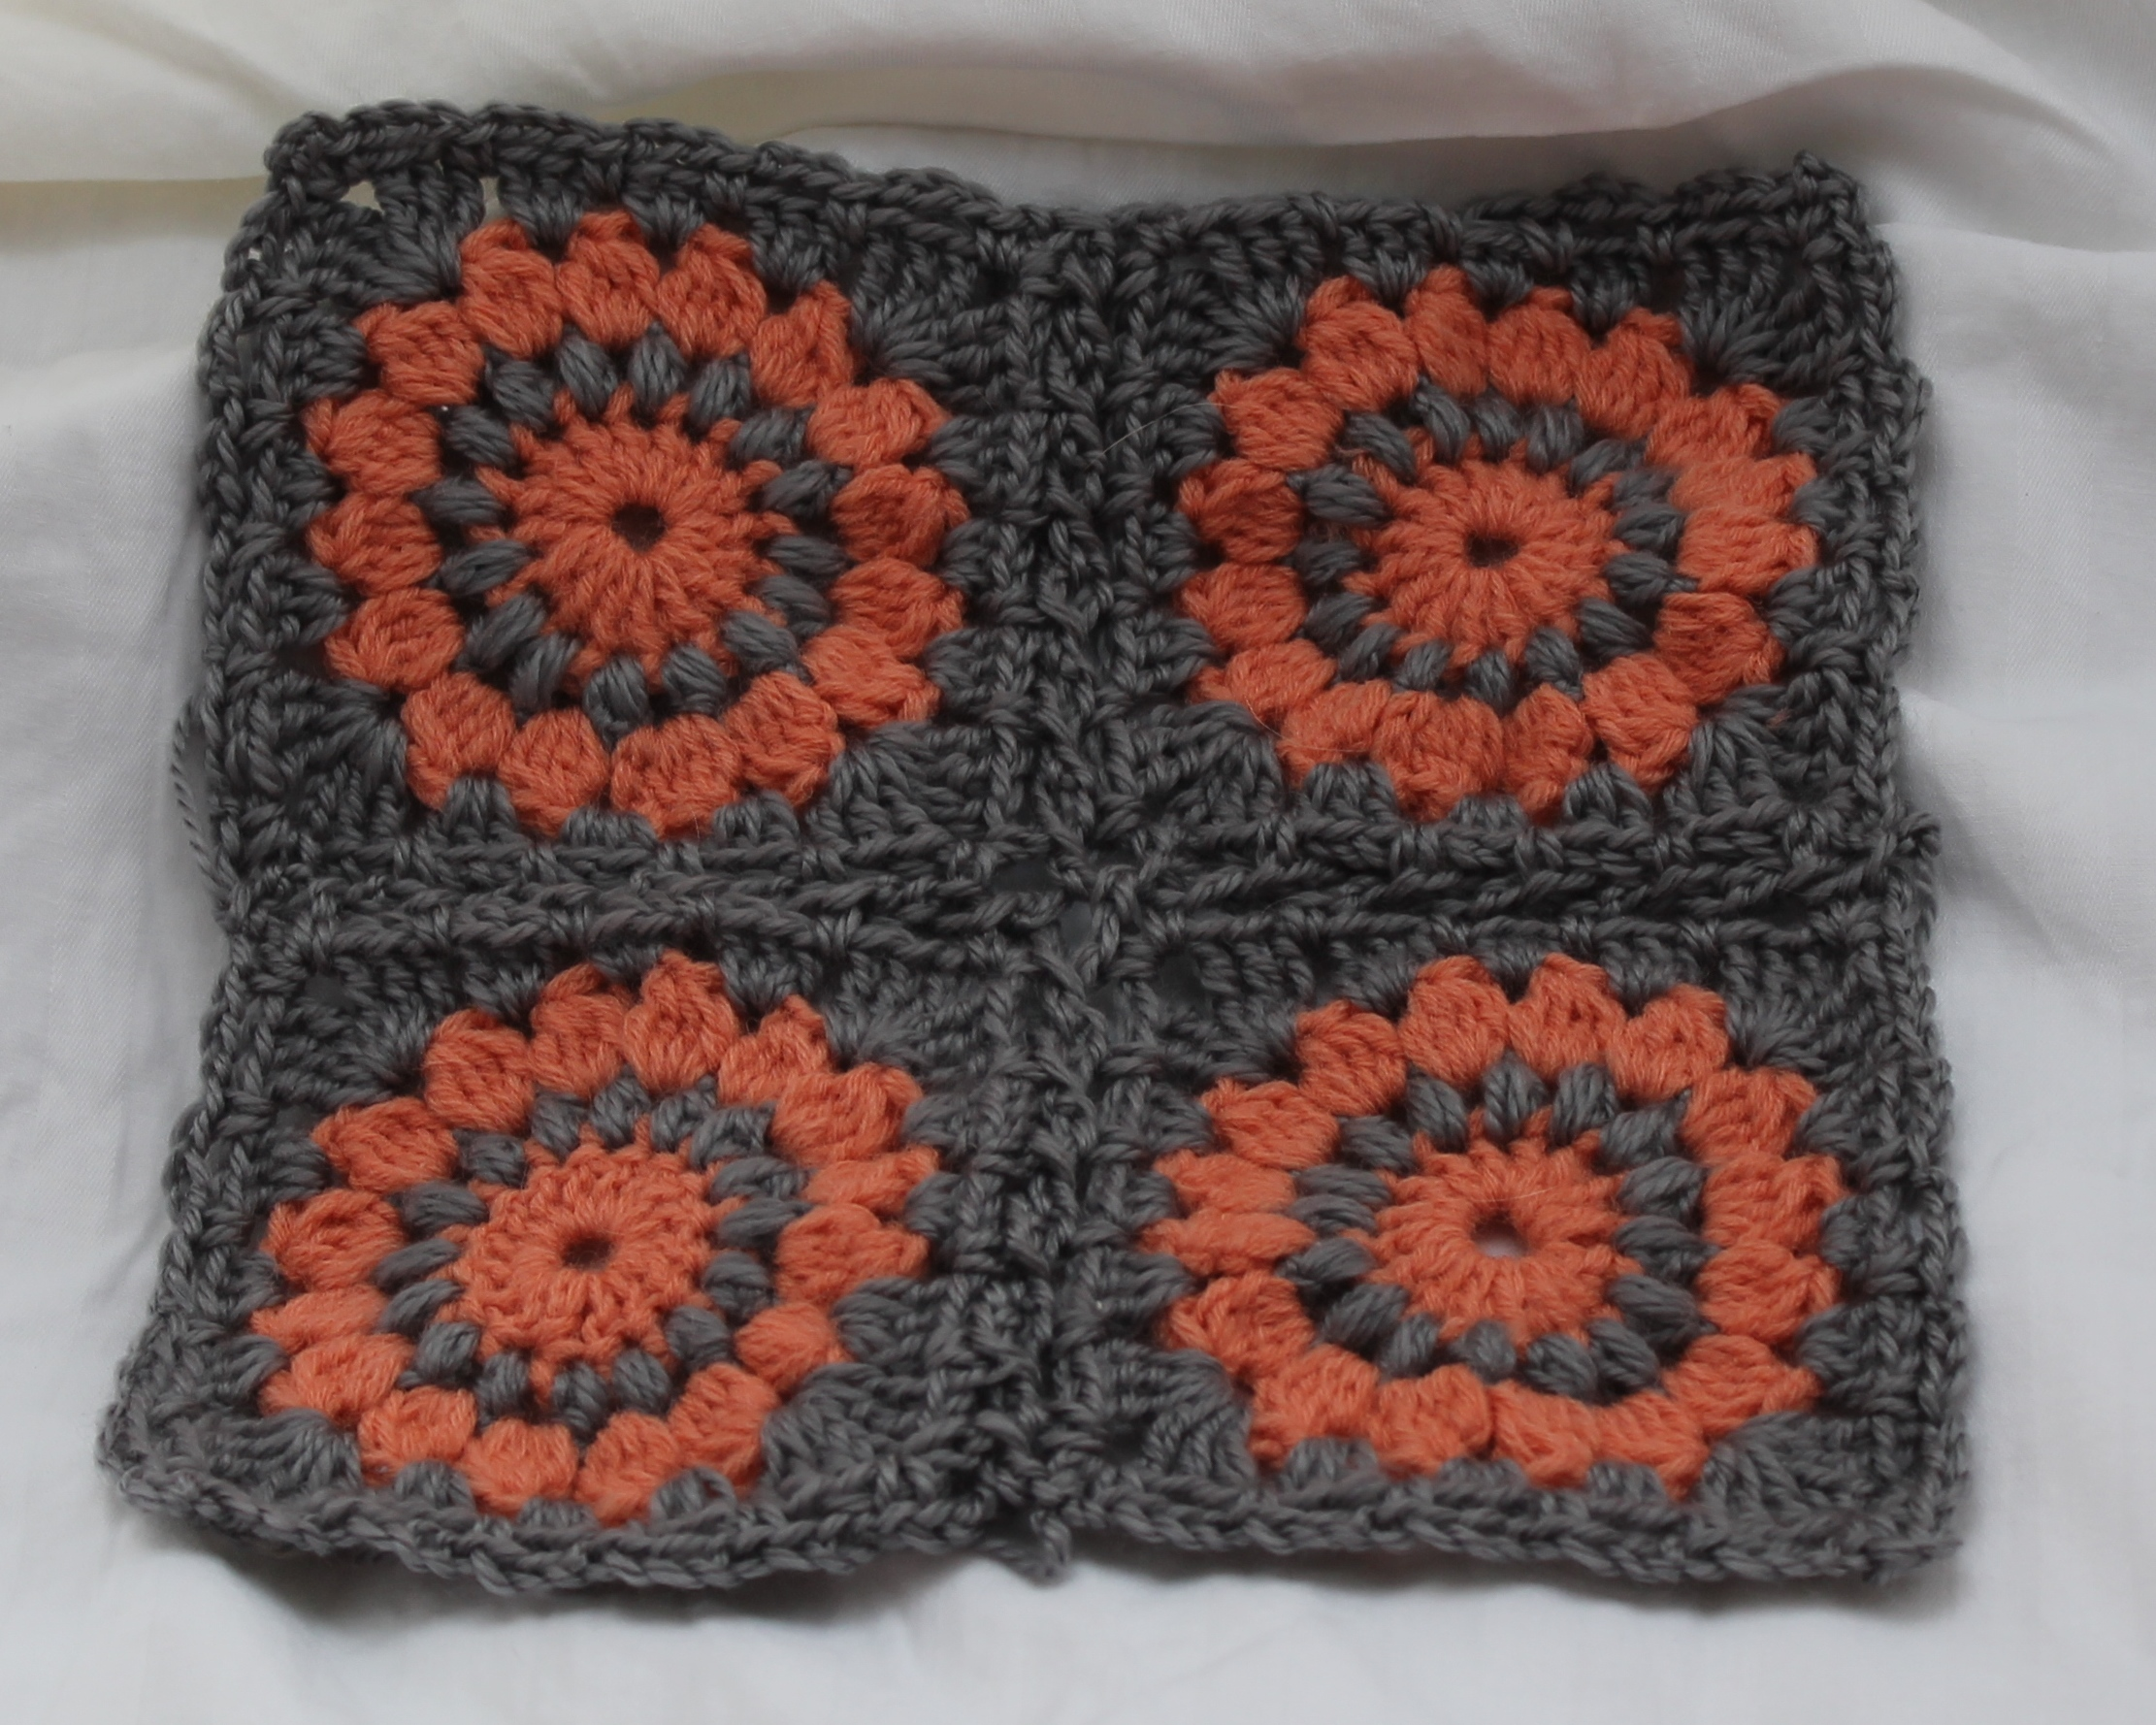 Four oral and gray granny squares